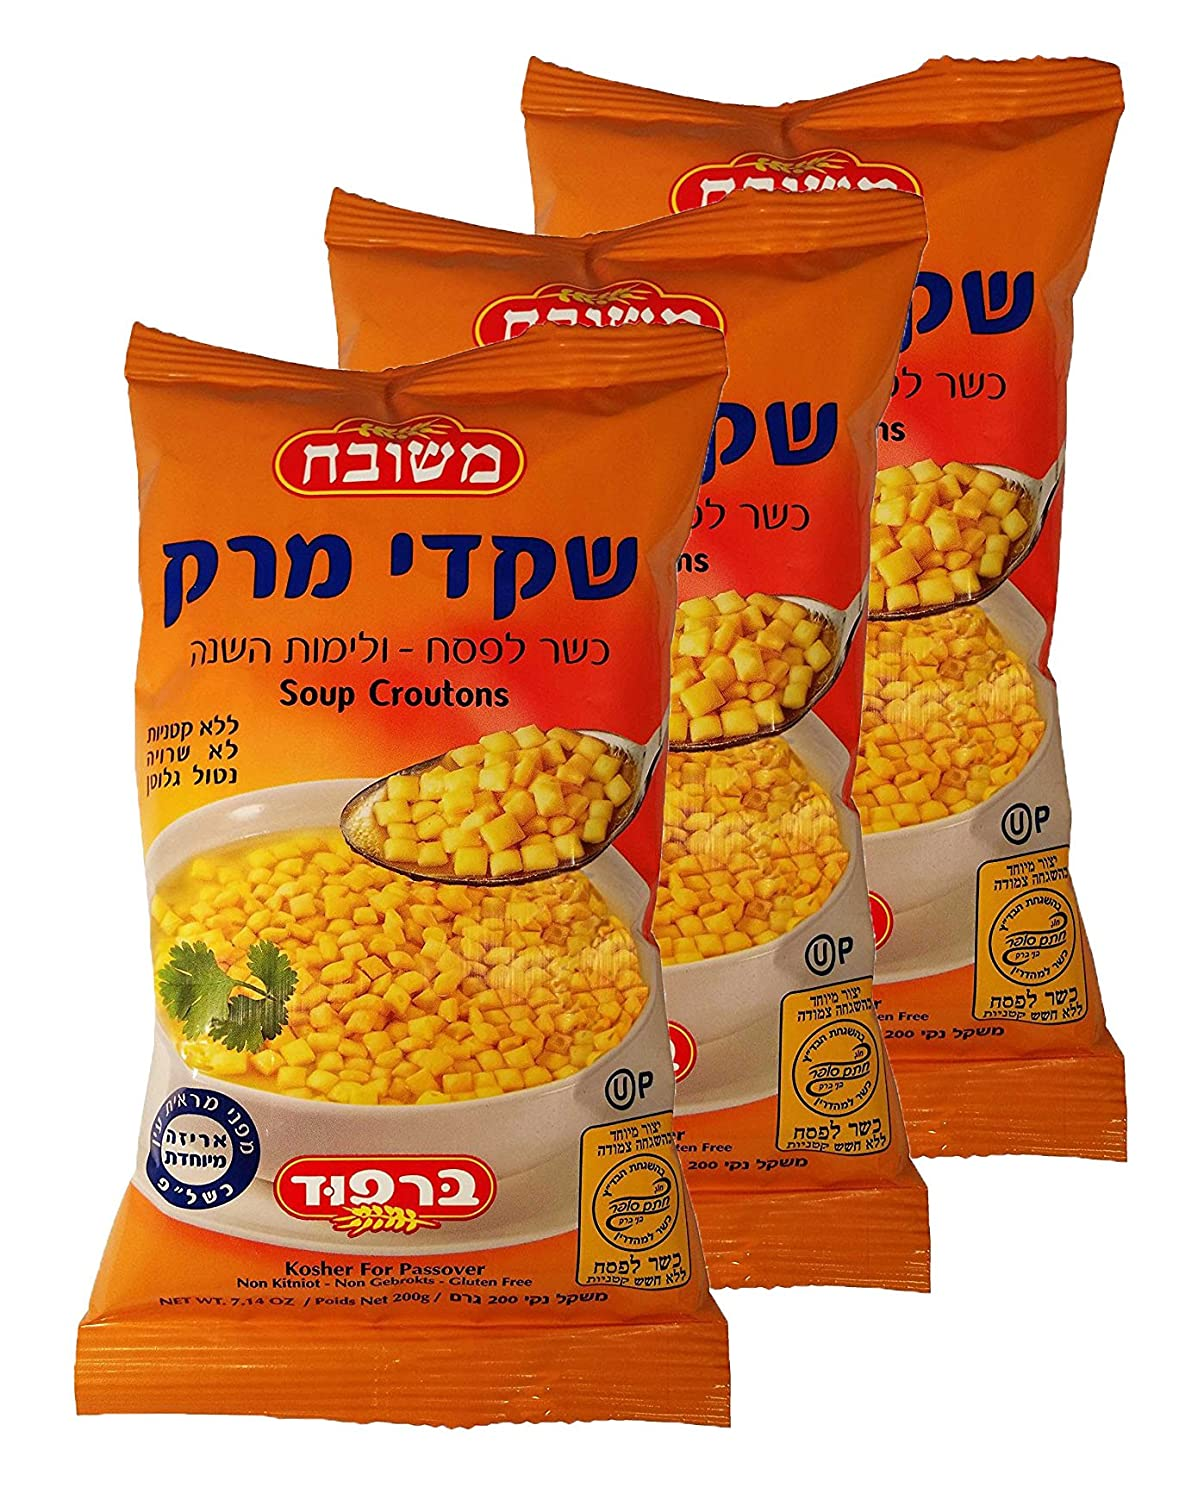 Meshubach Kosher for Passover Soup Croutons Gluten Free - (7.14oz) - Pack of 3